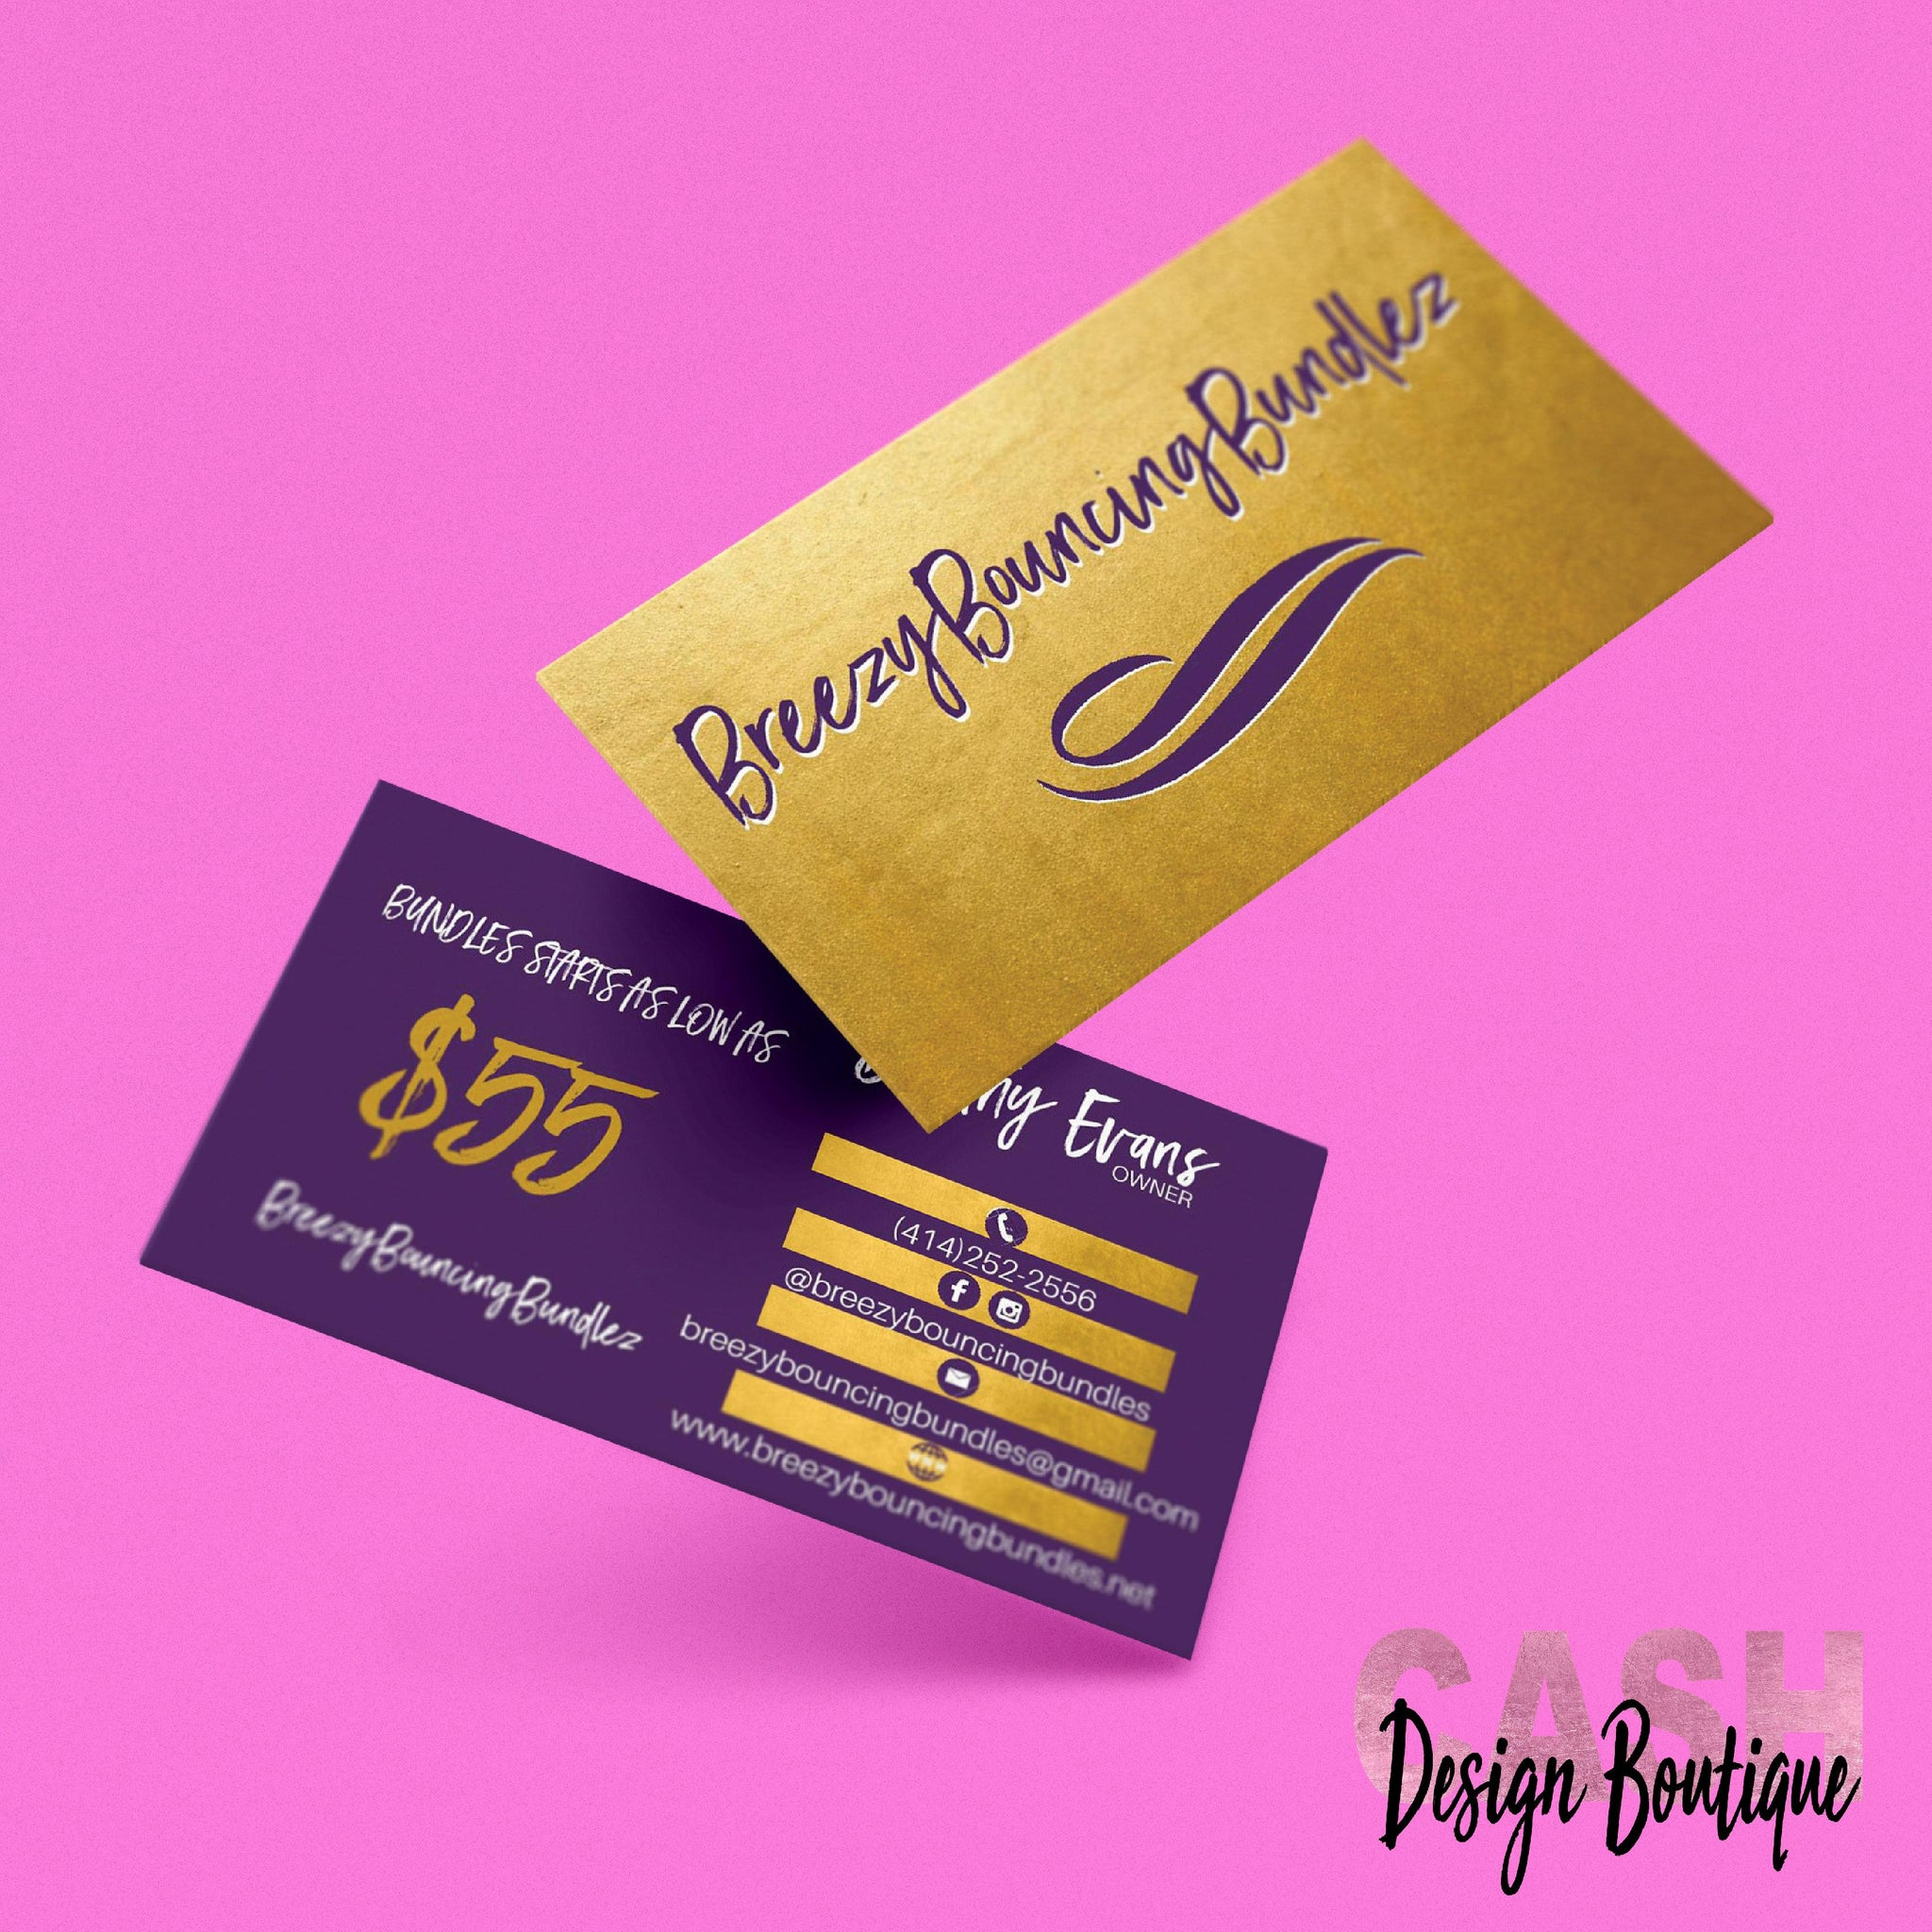 Custom Business Card Design & Print – Cash Design Boutique